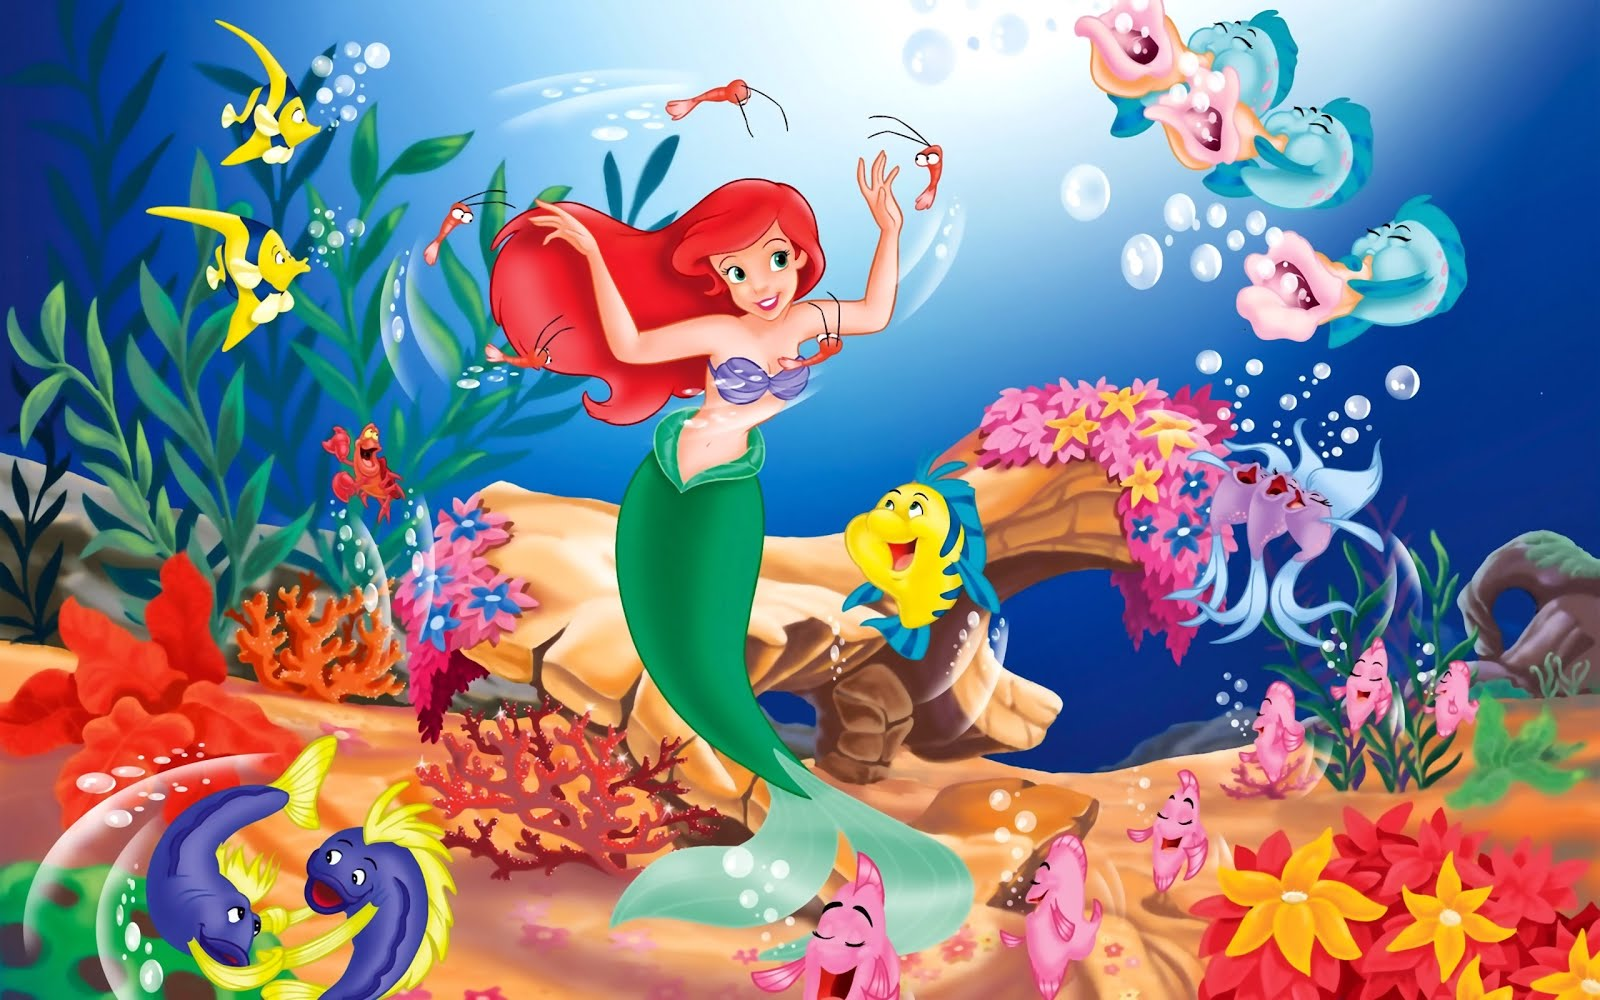 Iphone Wallpaper Disney The Little Mermaid